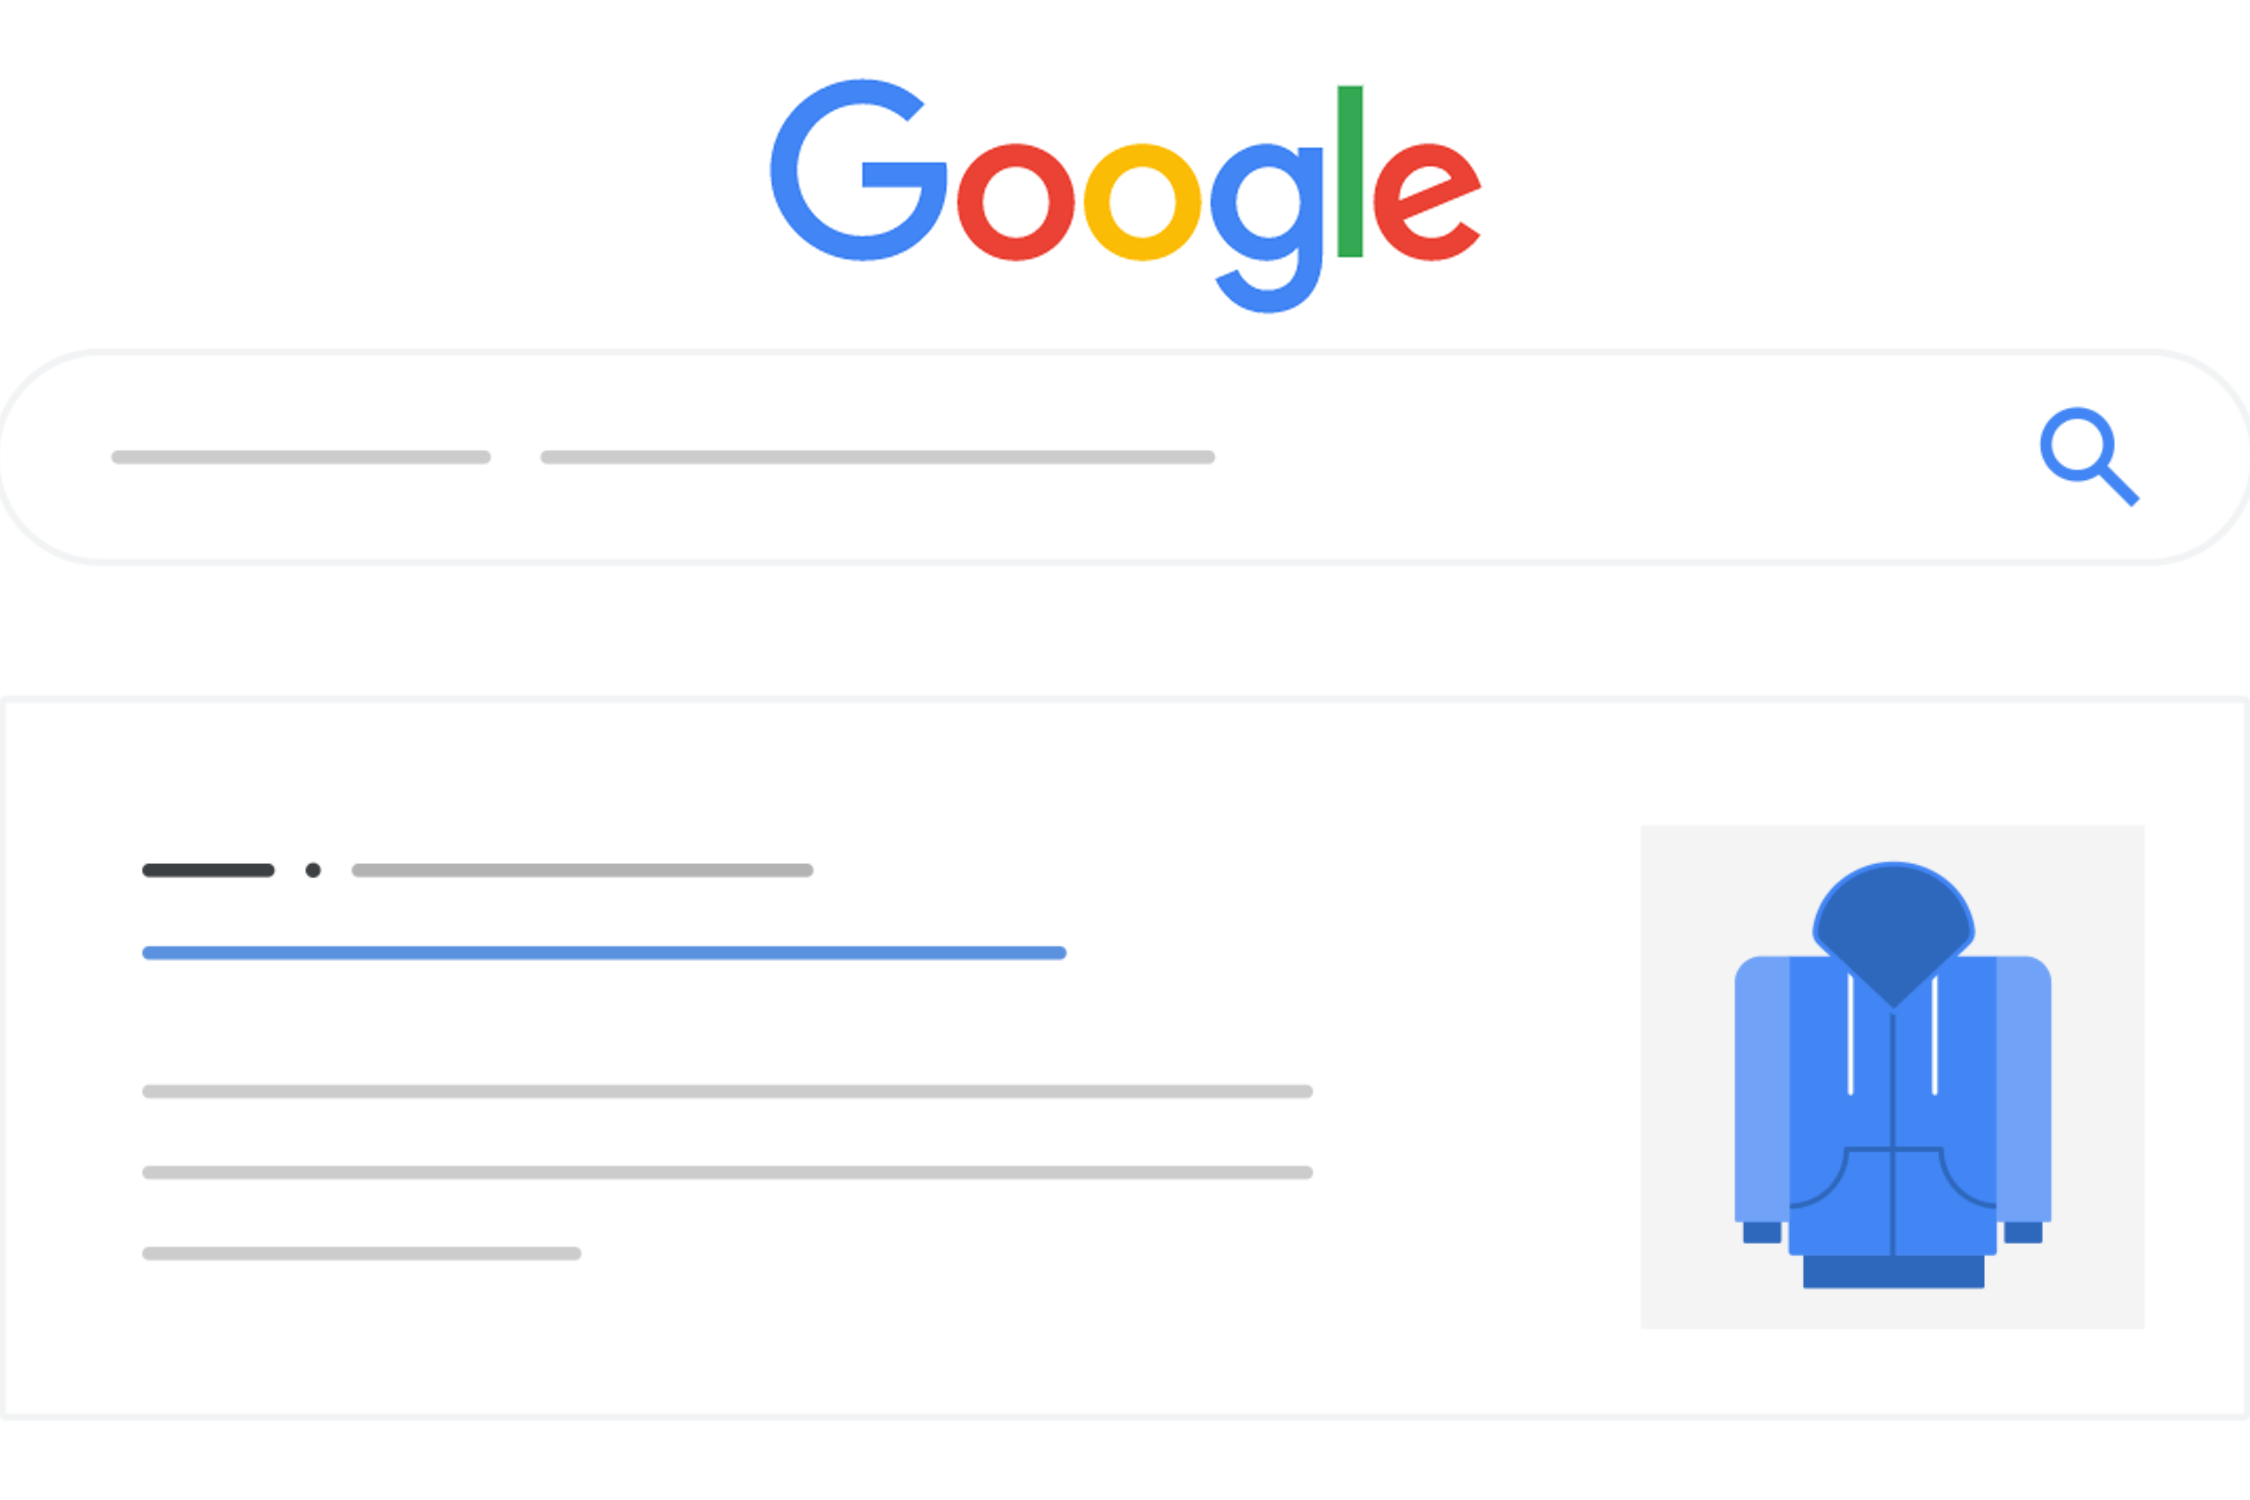 Image extensions for text ads in Google